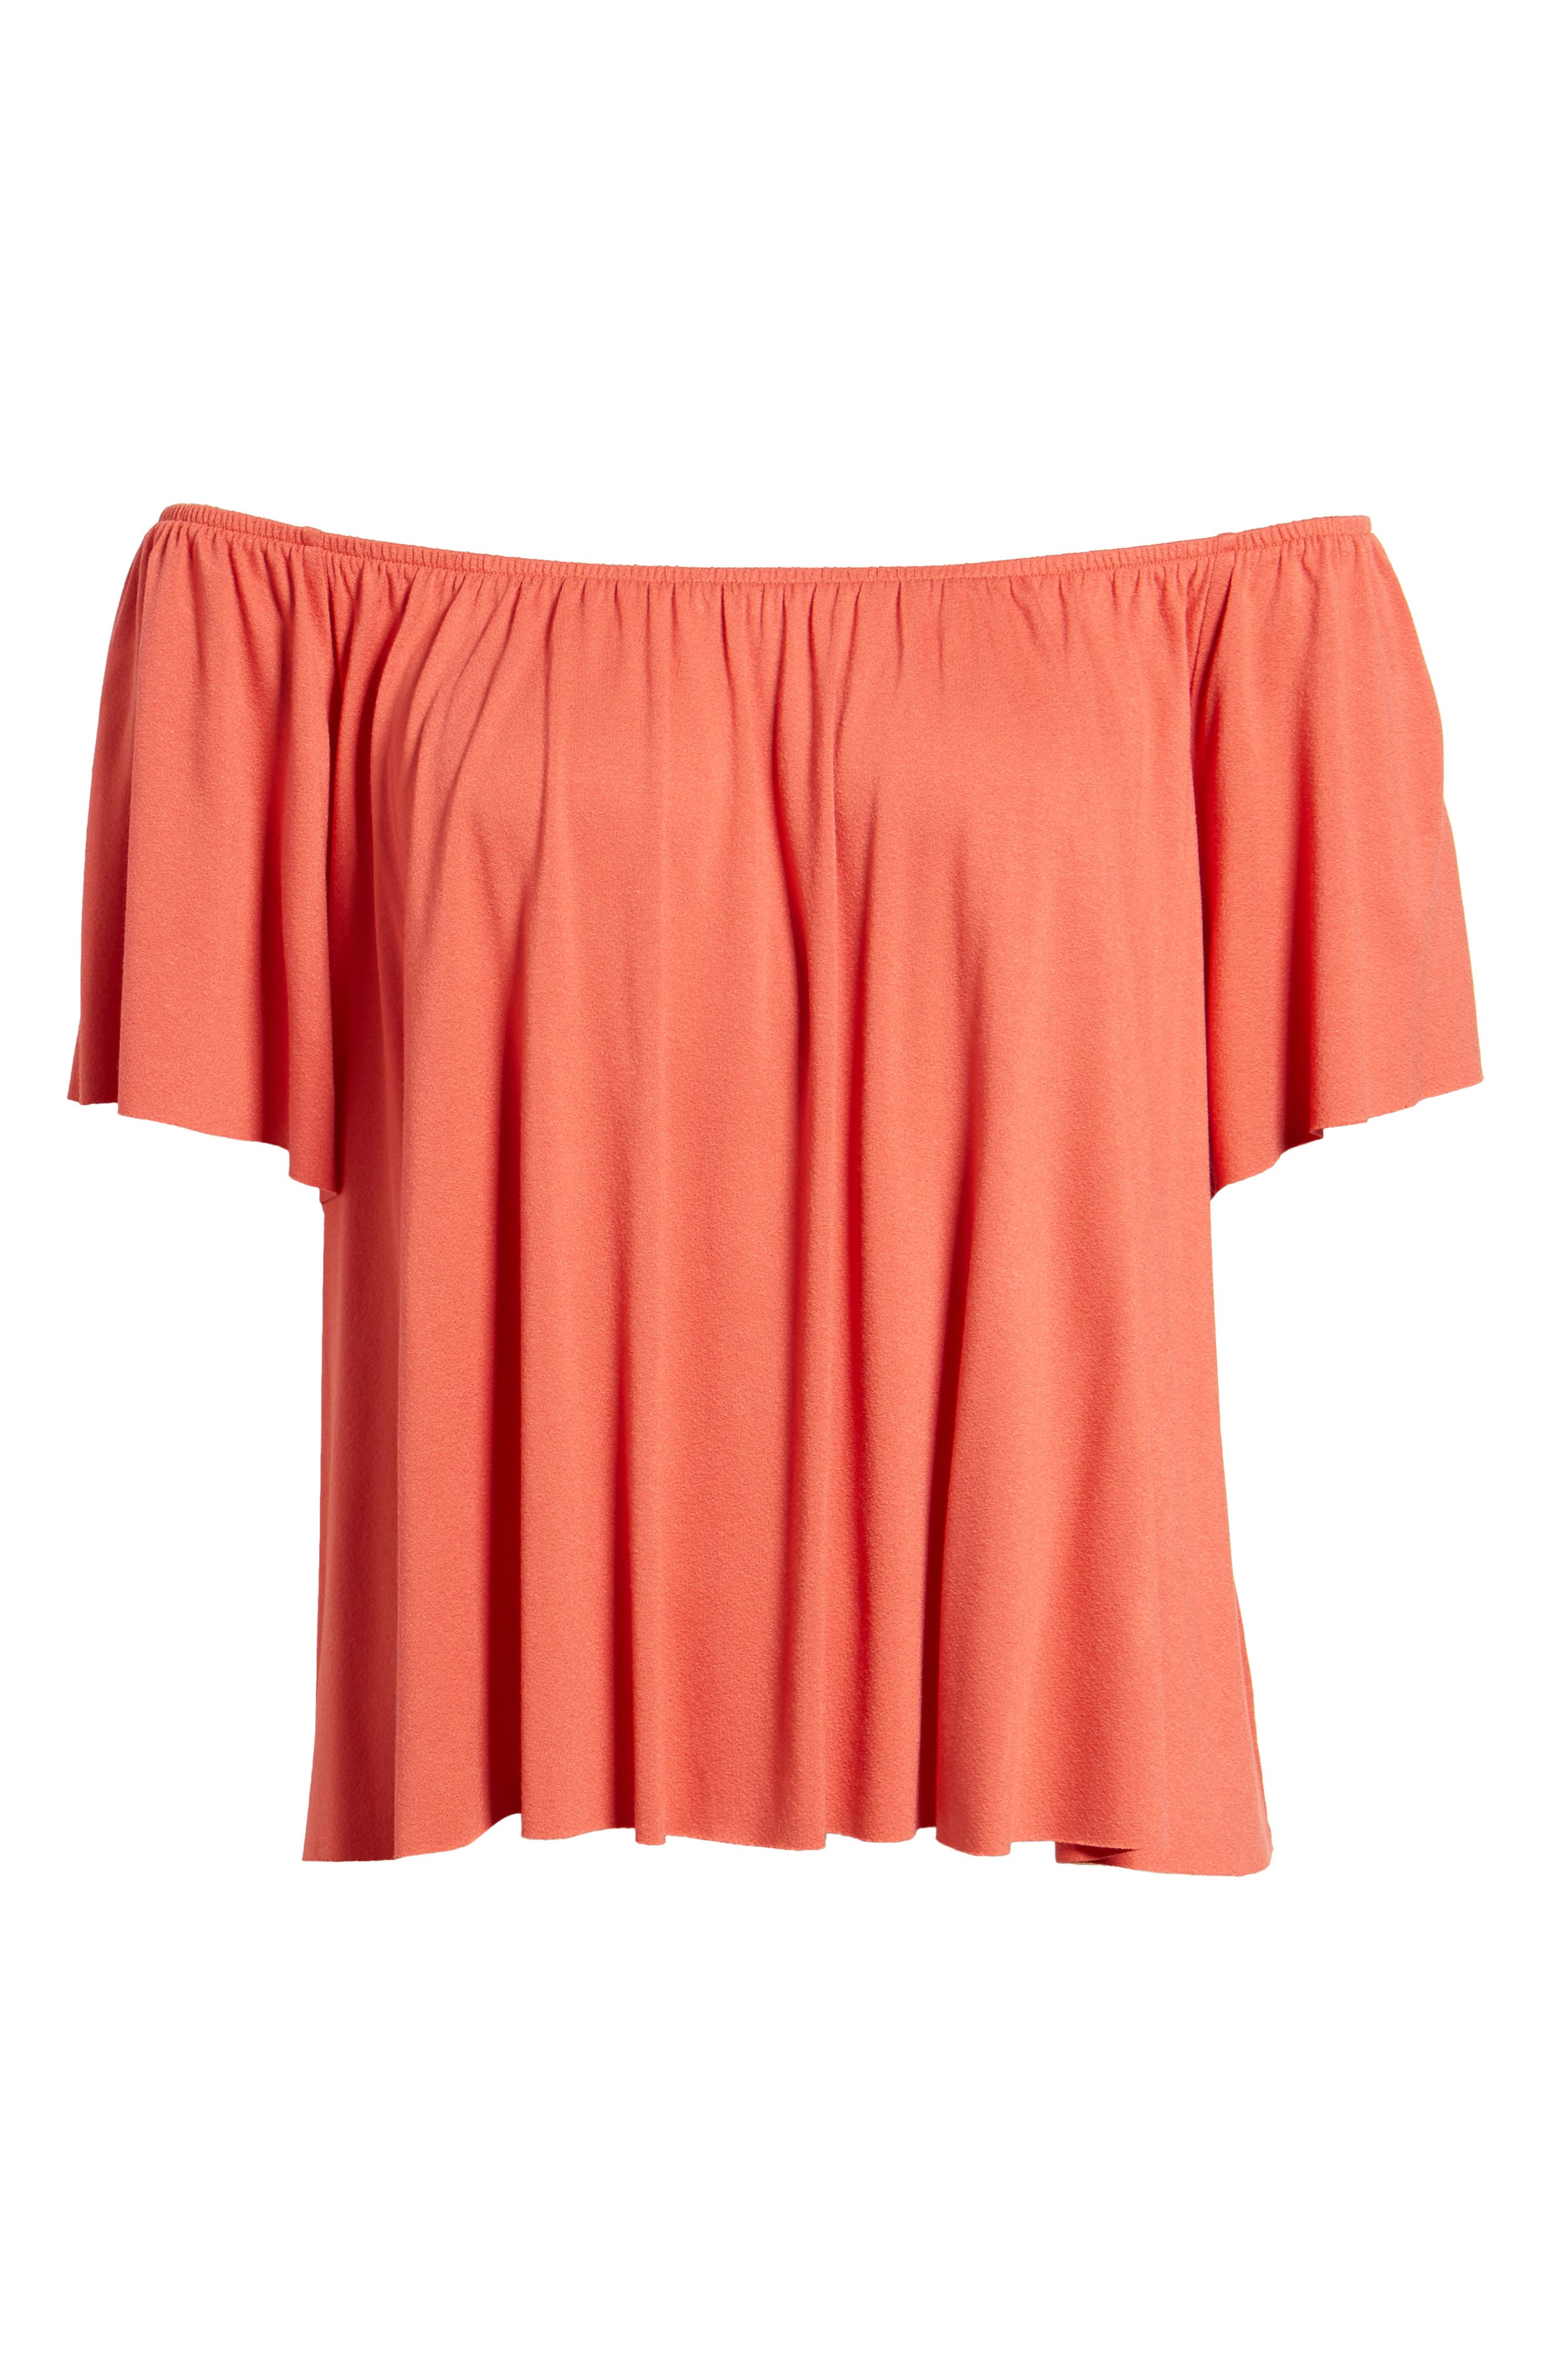 Off the Shoulder Top,                             Alternate thumbnail 6, color,                             Rust Sienna